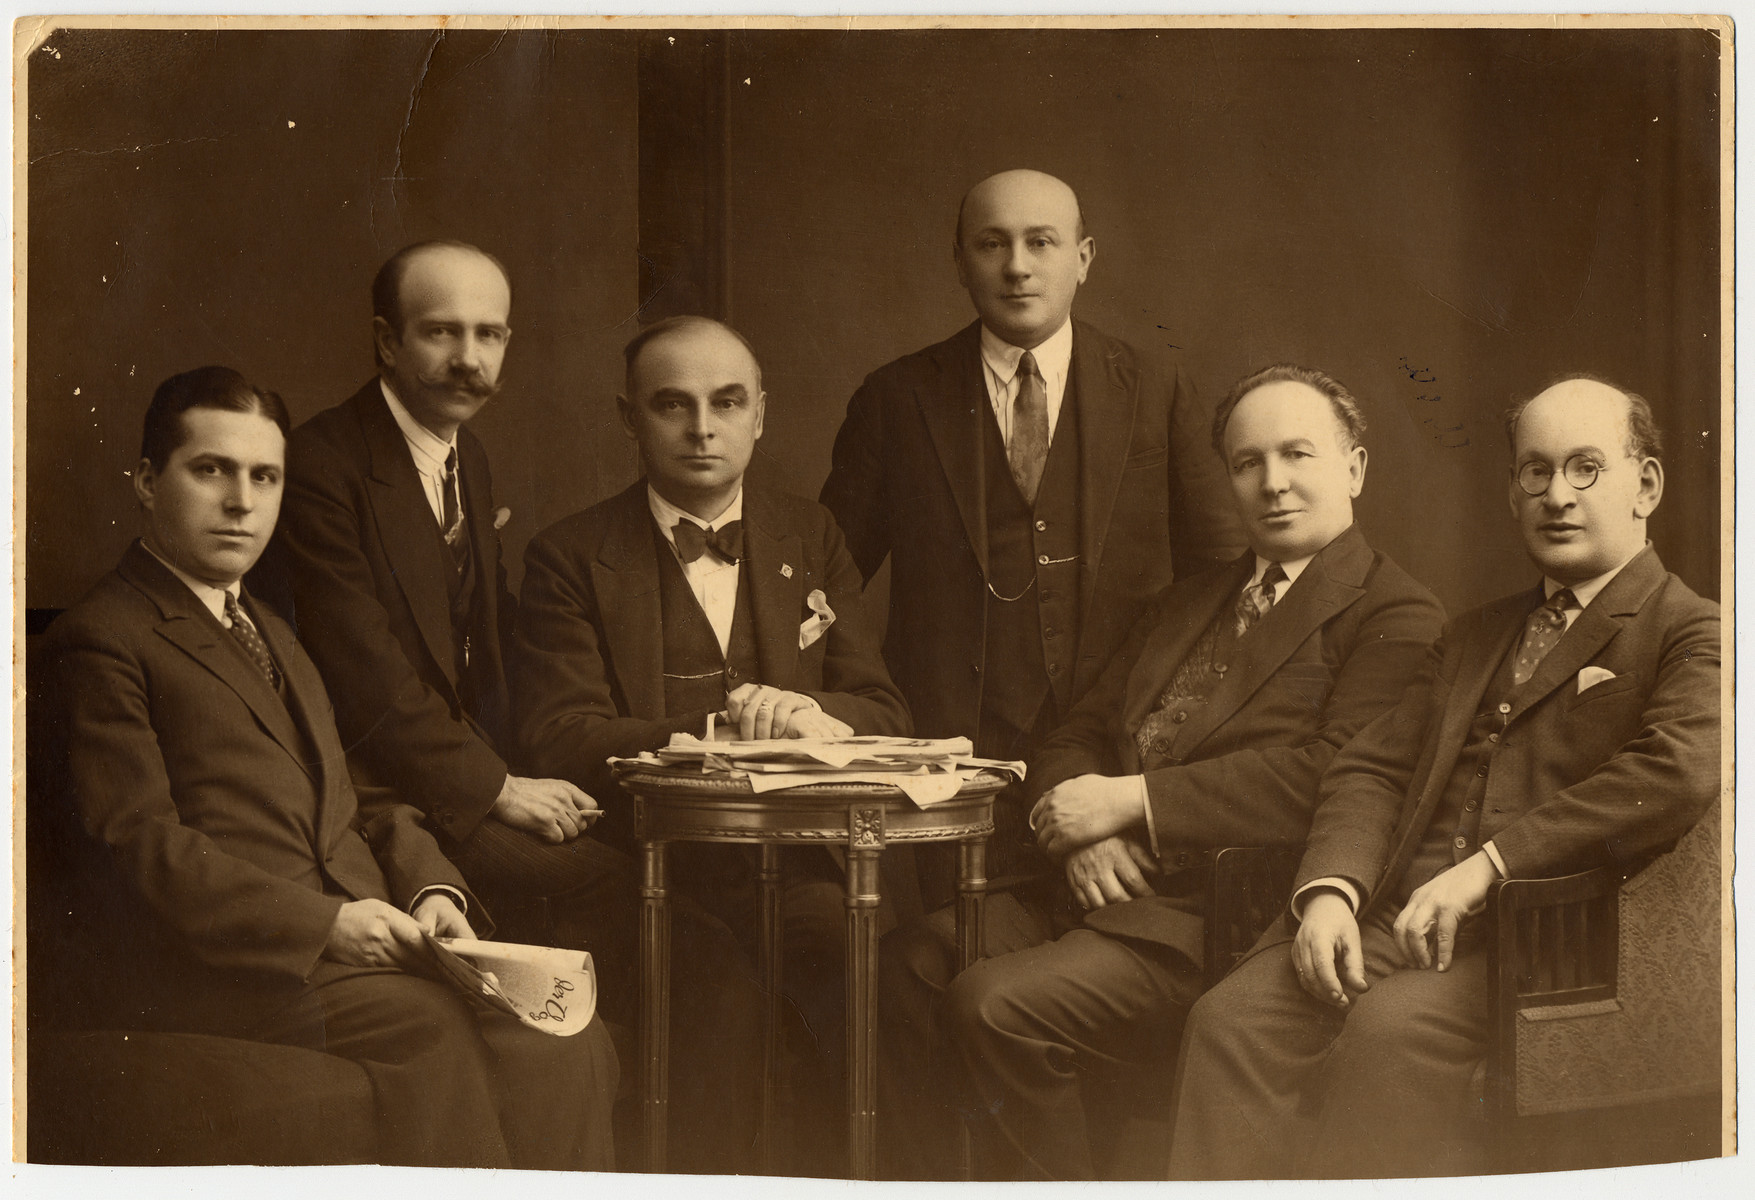 Group portrait of Jewish and Polish musicians.  Pictured are Jakub Surowicz, Kazimierz Butler, Andrzej Bromke, Jozef Labuszynski, Aleksander Junowicz and Pawel Ginsburg.  All (probably) were members of the National (Warsaw) Philharmonic in the 1930s; their instruments Butler: cello; Bromke: trumpet; Labuszynski: bass; Junowicz: flute; Ginsburg: viola.